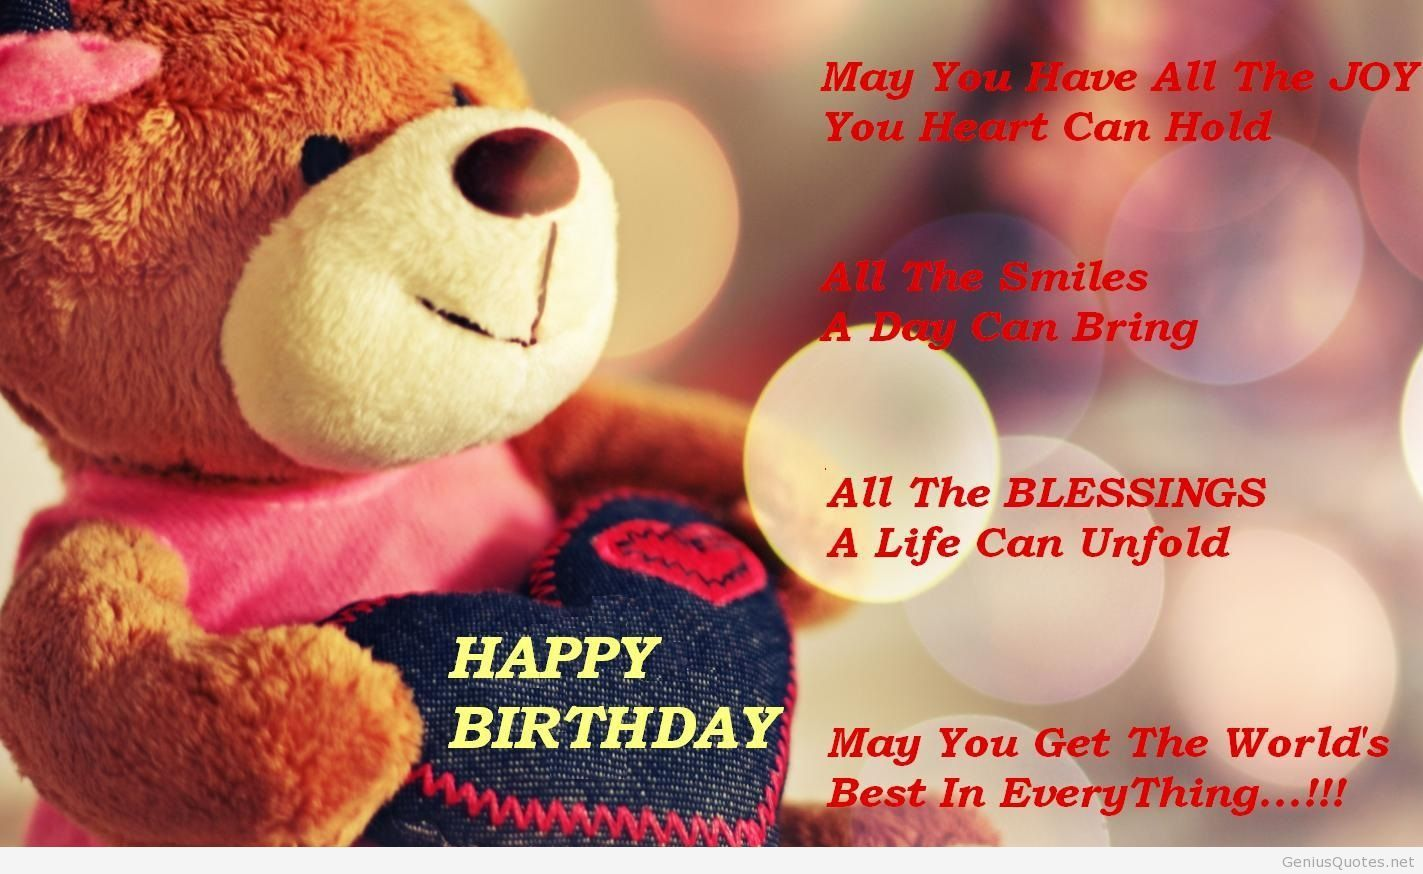 happy birthday quotes images download ; happy-birthday-images-11